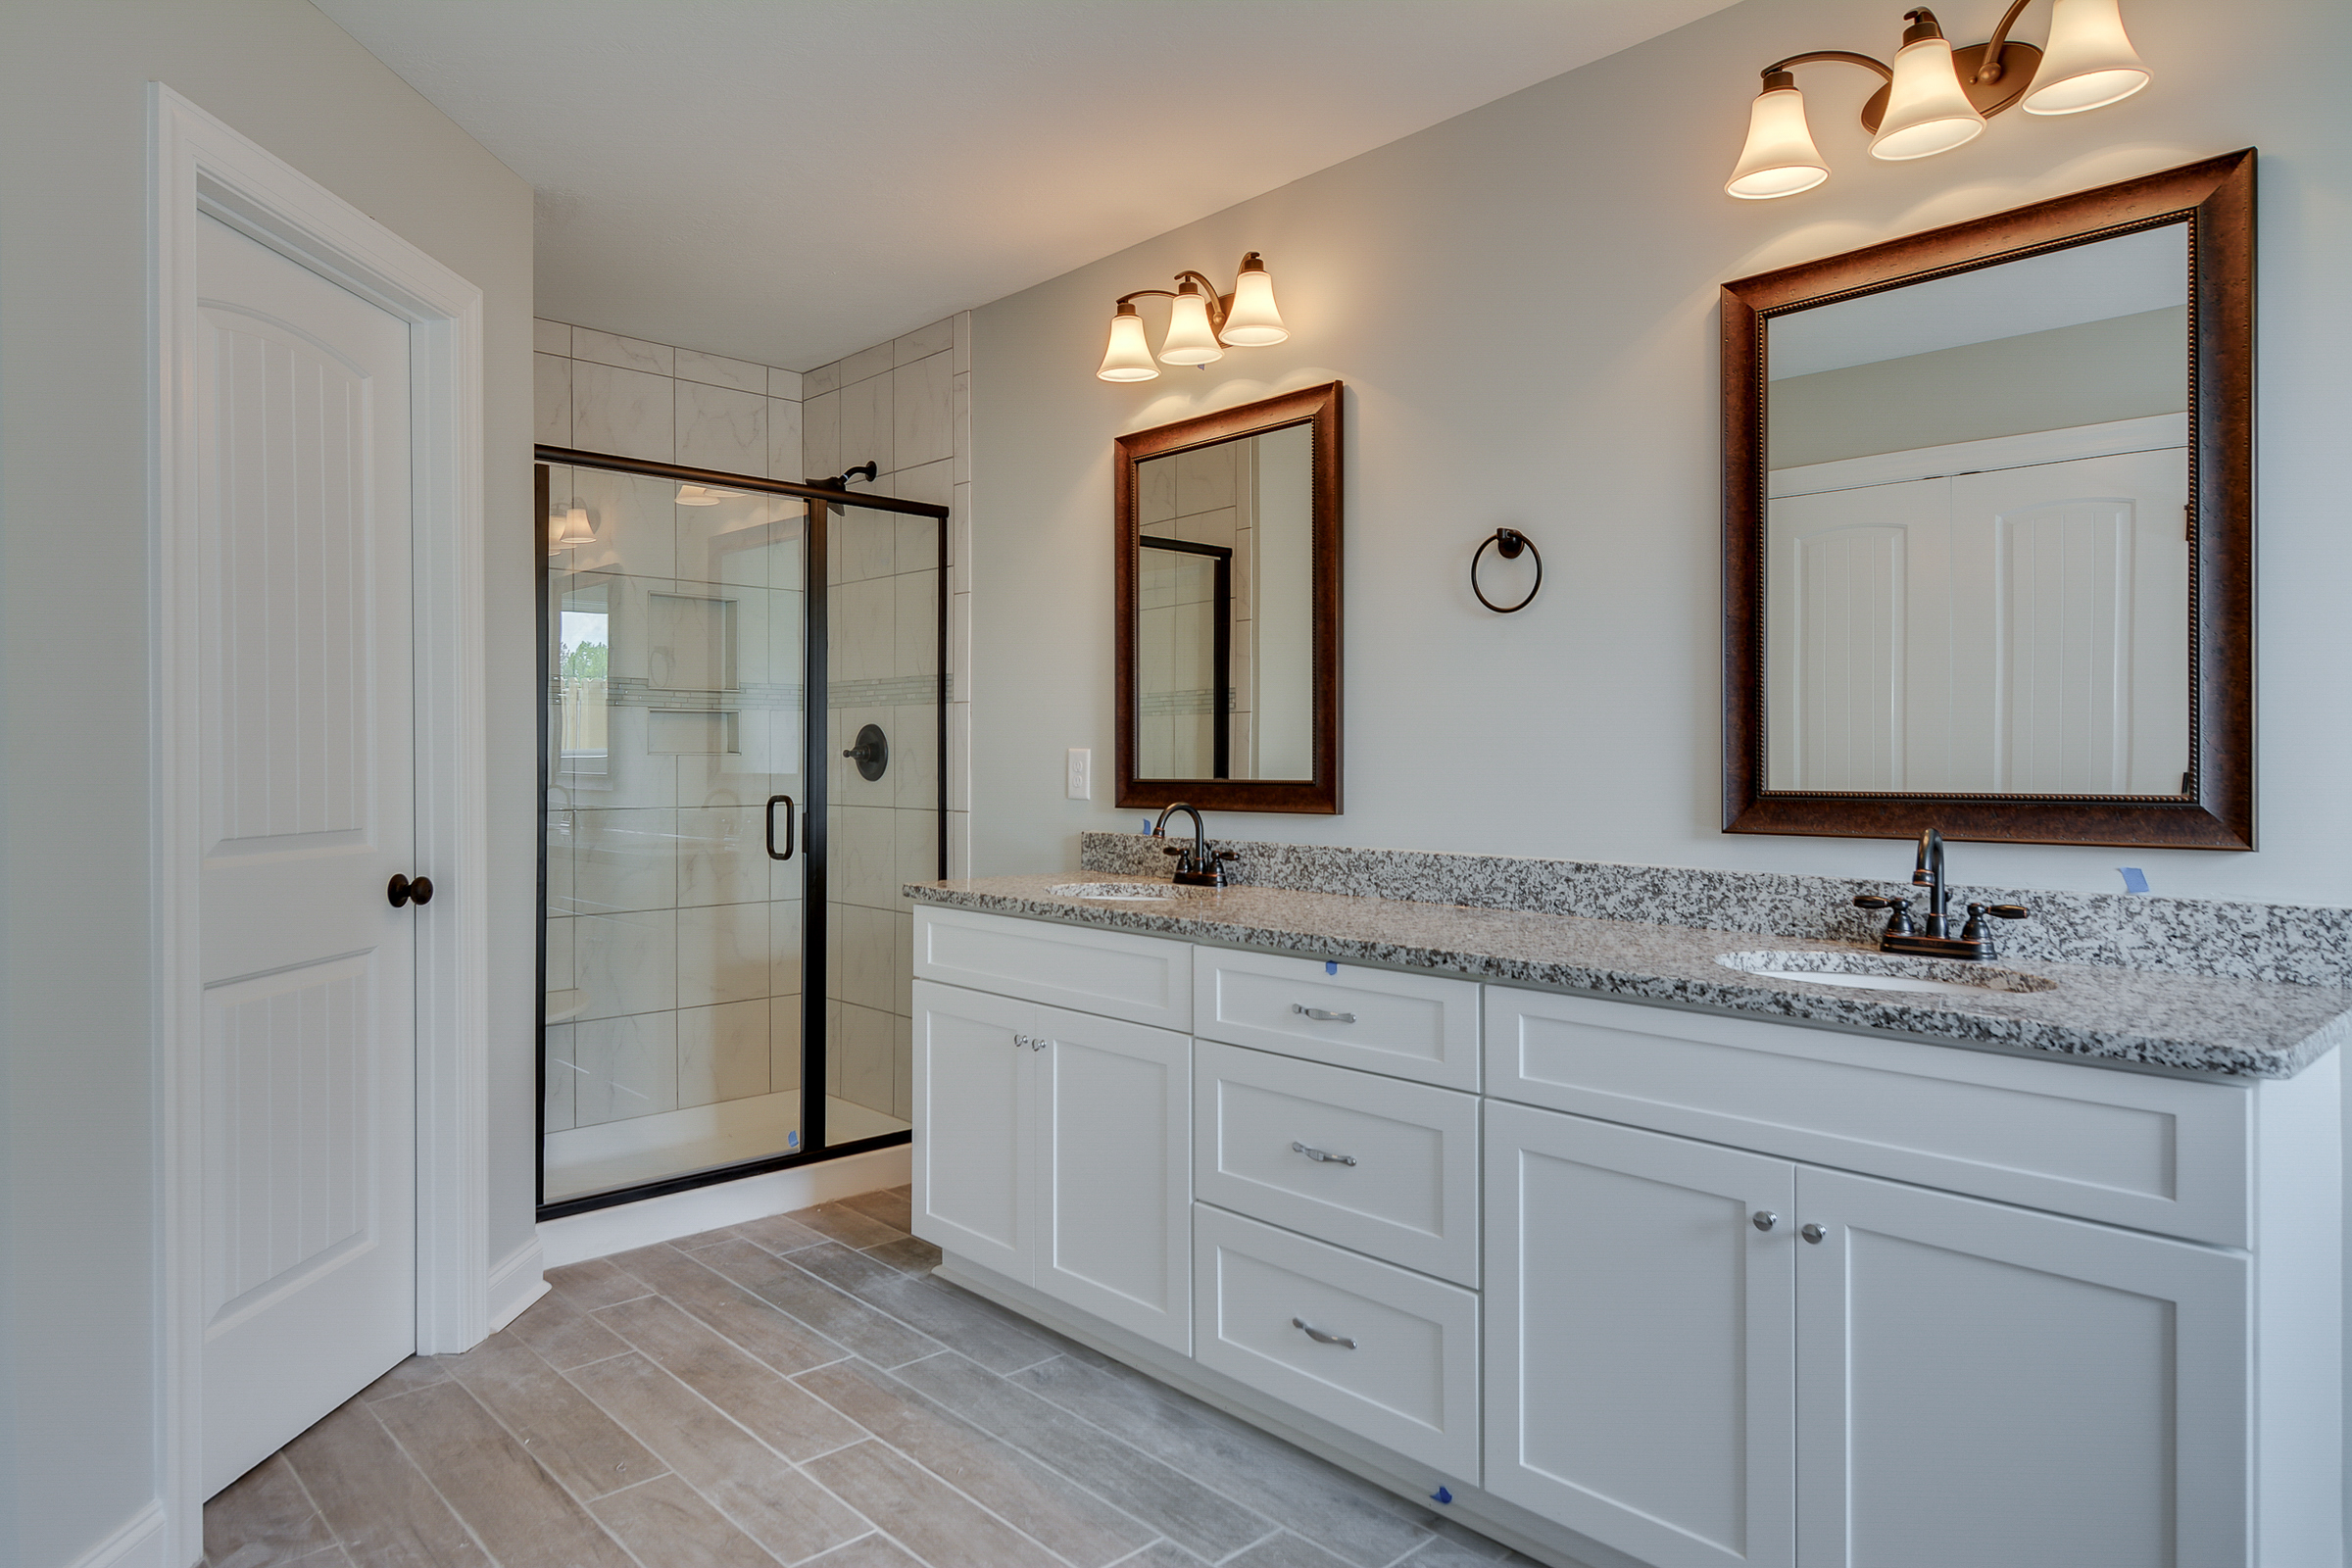 An image of a bathroom with walk in shower in a Kelarie home.